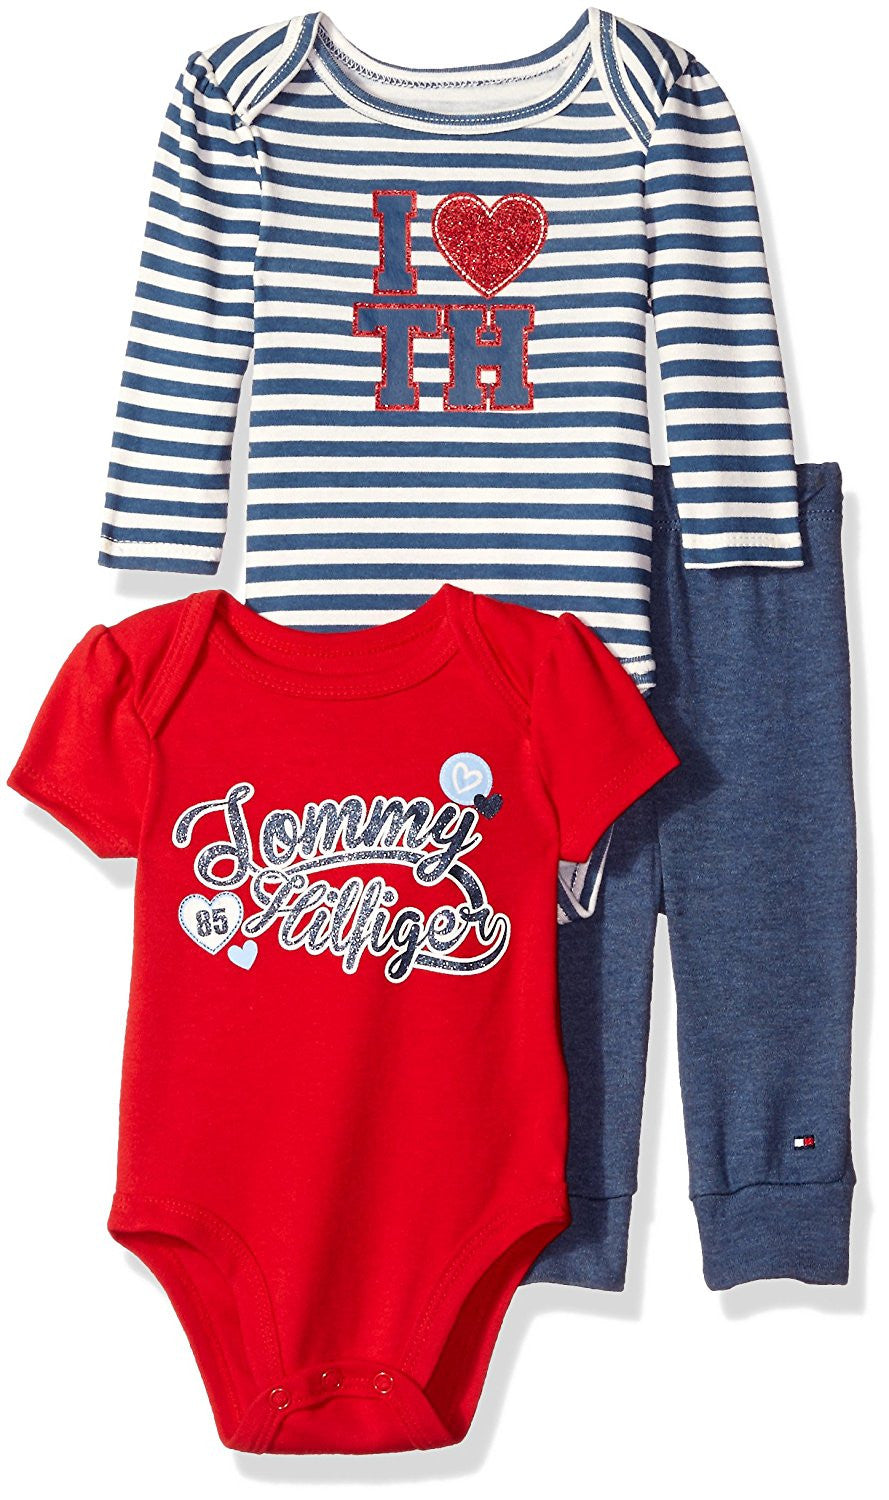 4e0f095c Tommy Hilfiger Baby Girls' 3 Piece Creeper Pants Set – Munchkinz